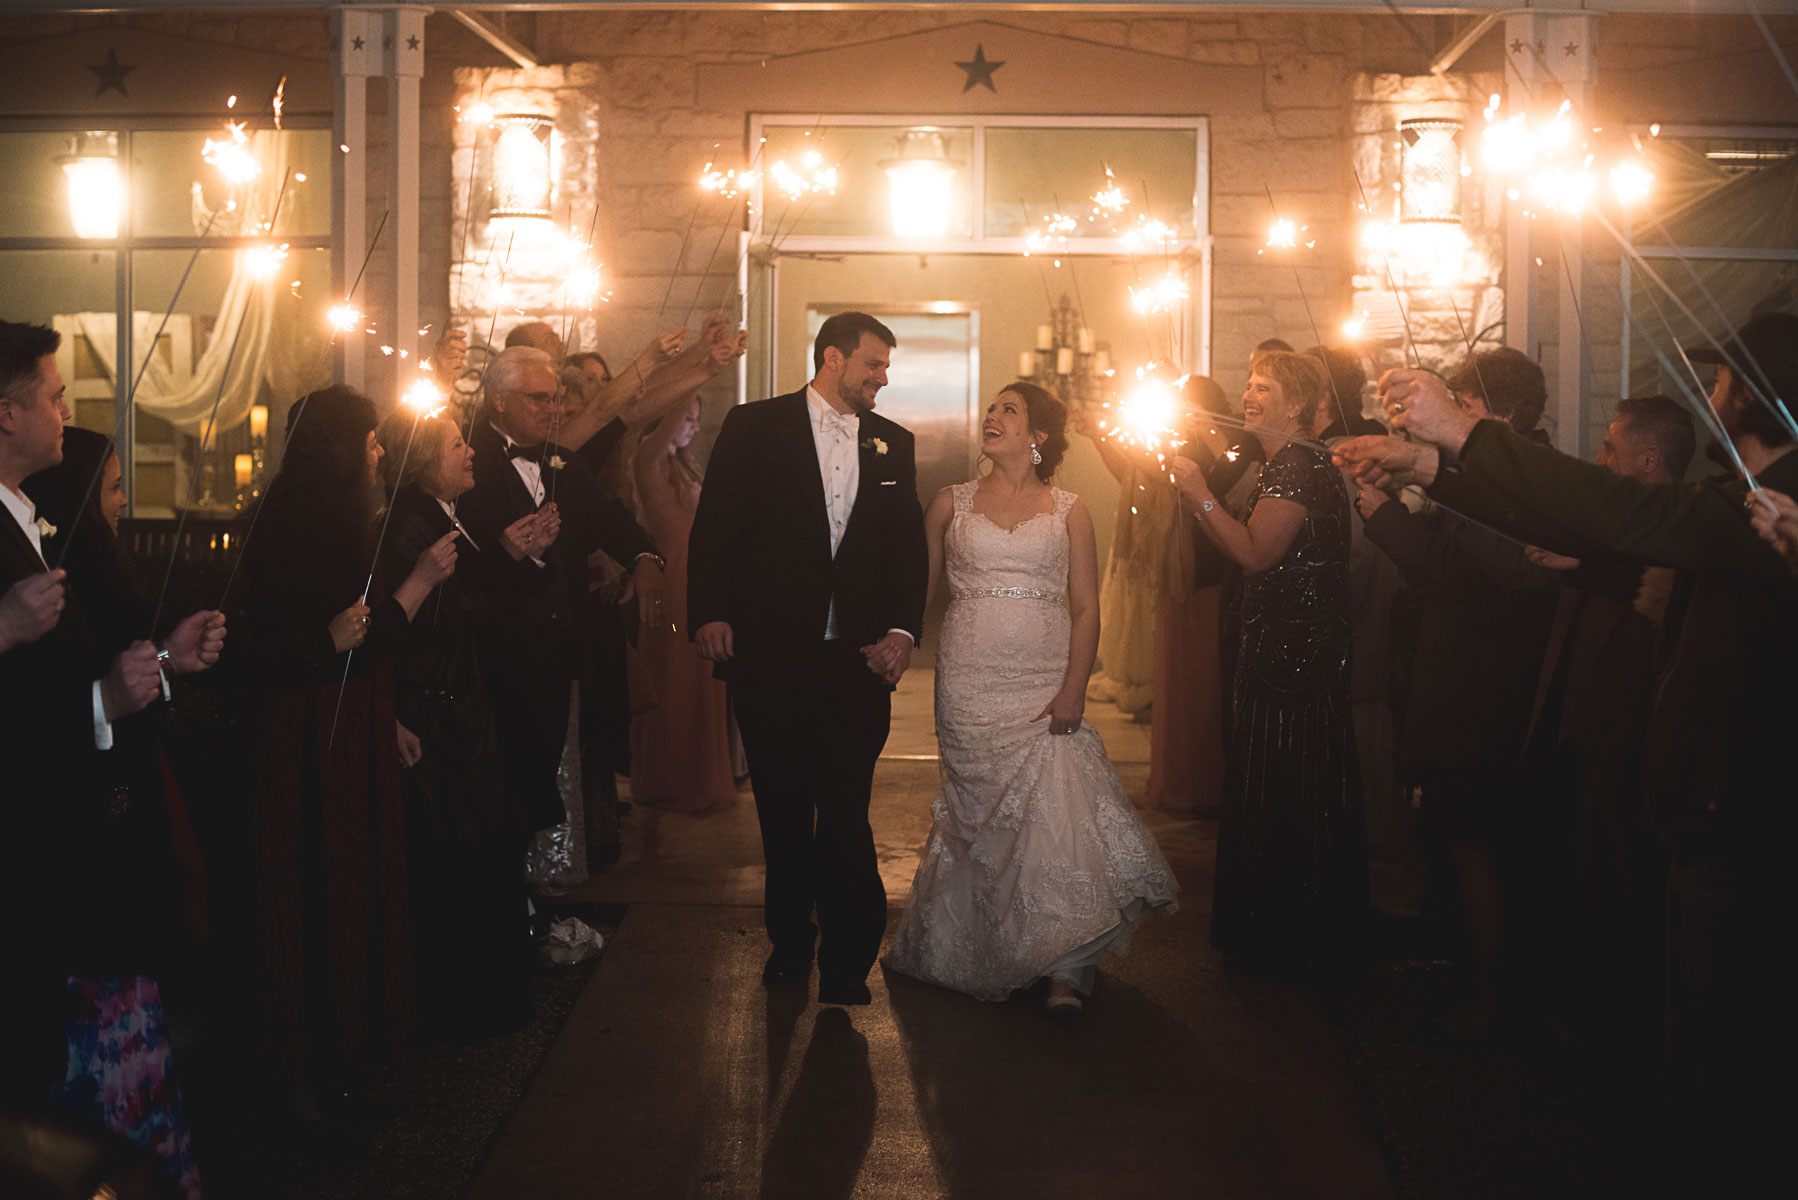 Austin Texas Wedding at the Terrace Club in Drippin Springs Fog in February-216.JPG